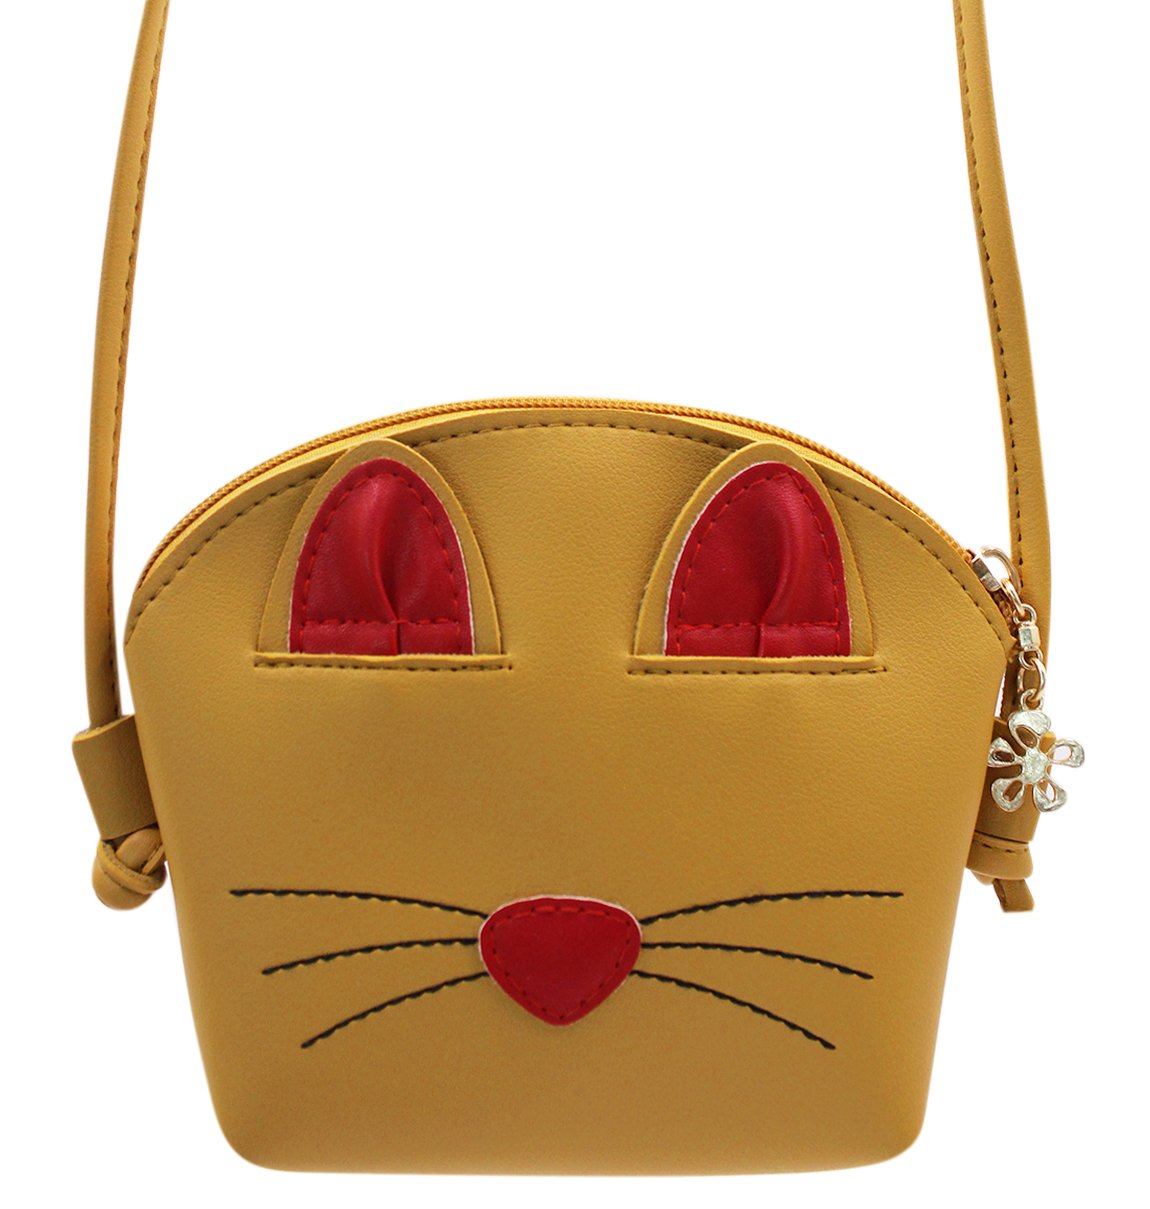 Bags us Fashion Cute Cat Bowknot Single Shoulder Bag Coin Purse Small Crossbody Satchel Handbags Wallet for Kids Girls(5.4X4.5in)